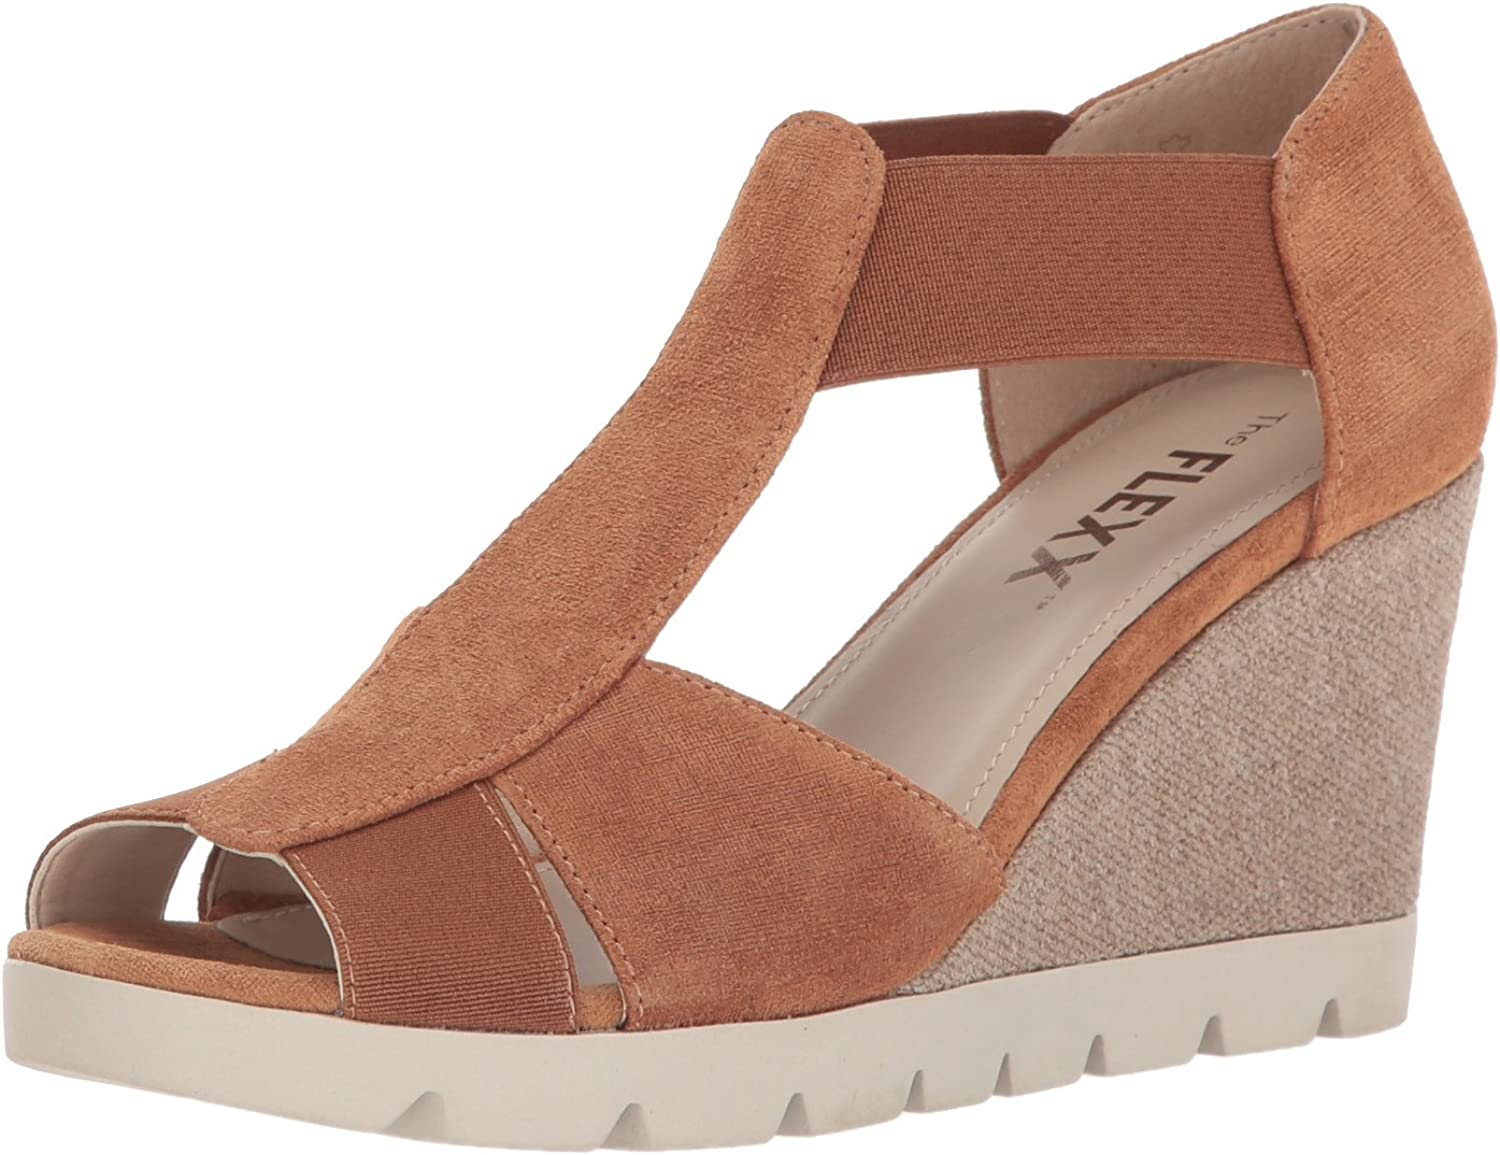 The Flexx Womens Lotto Wedge Sandal